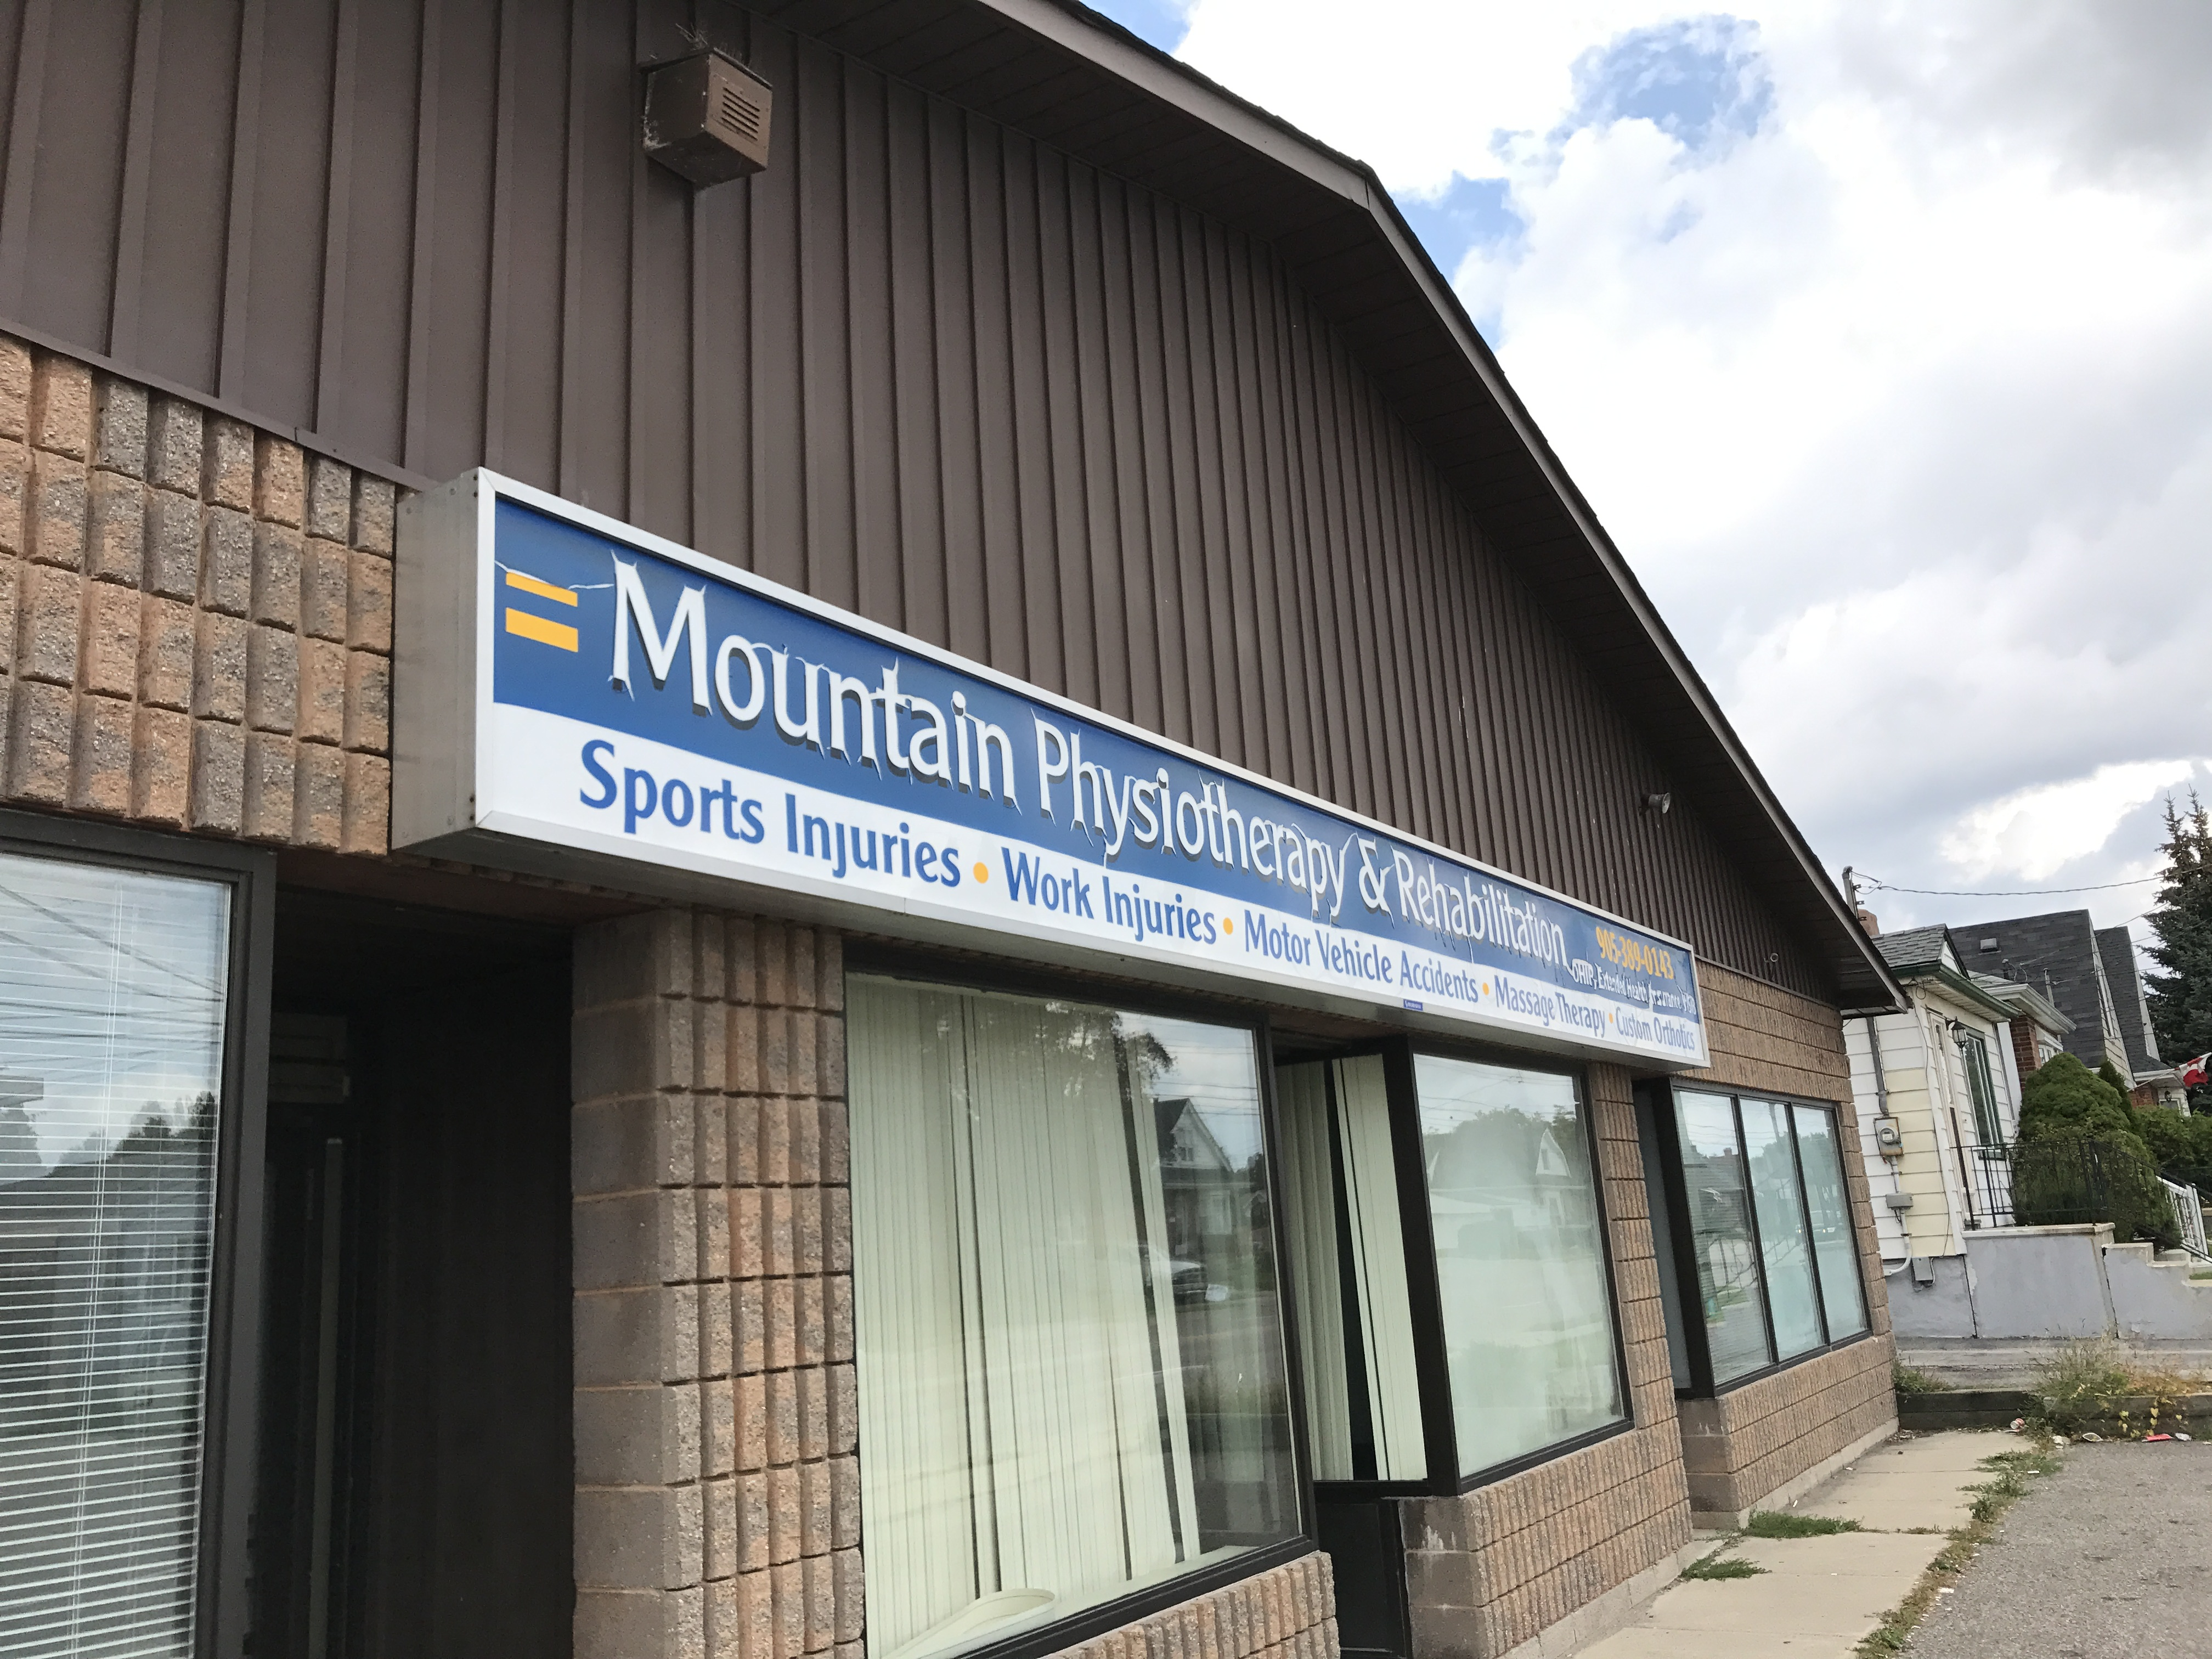 Building exterior and front sign for Mountain physiotherapy